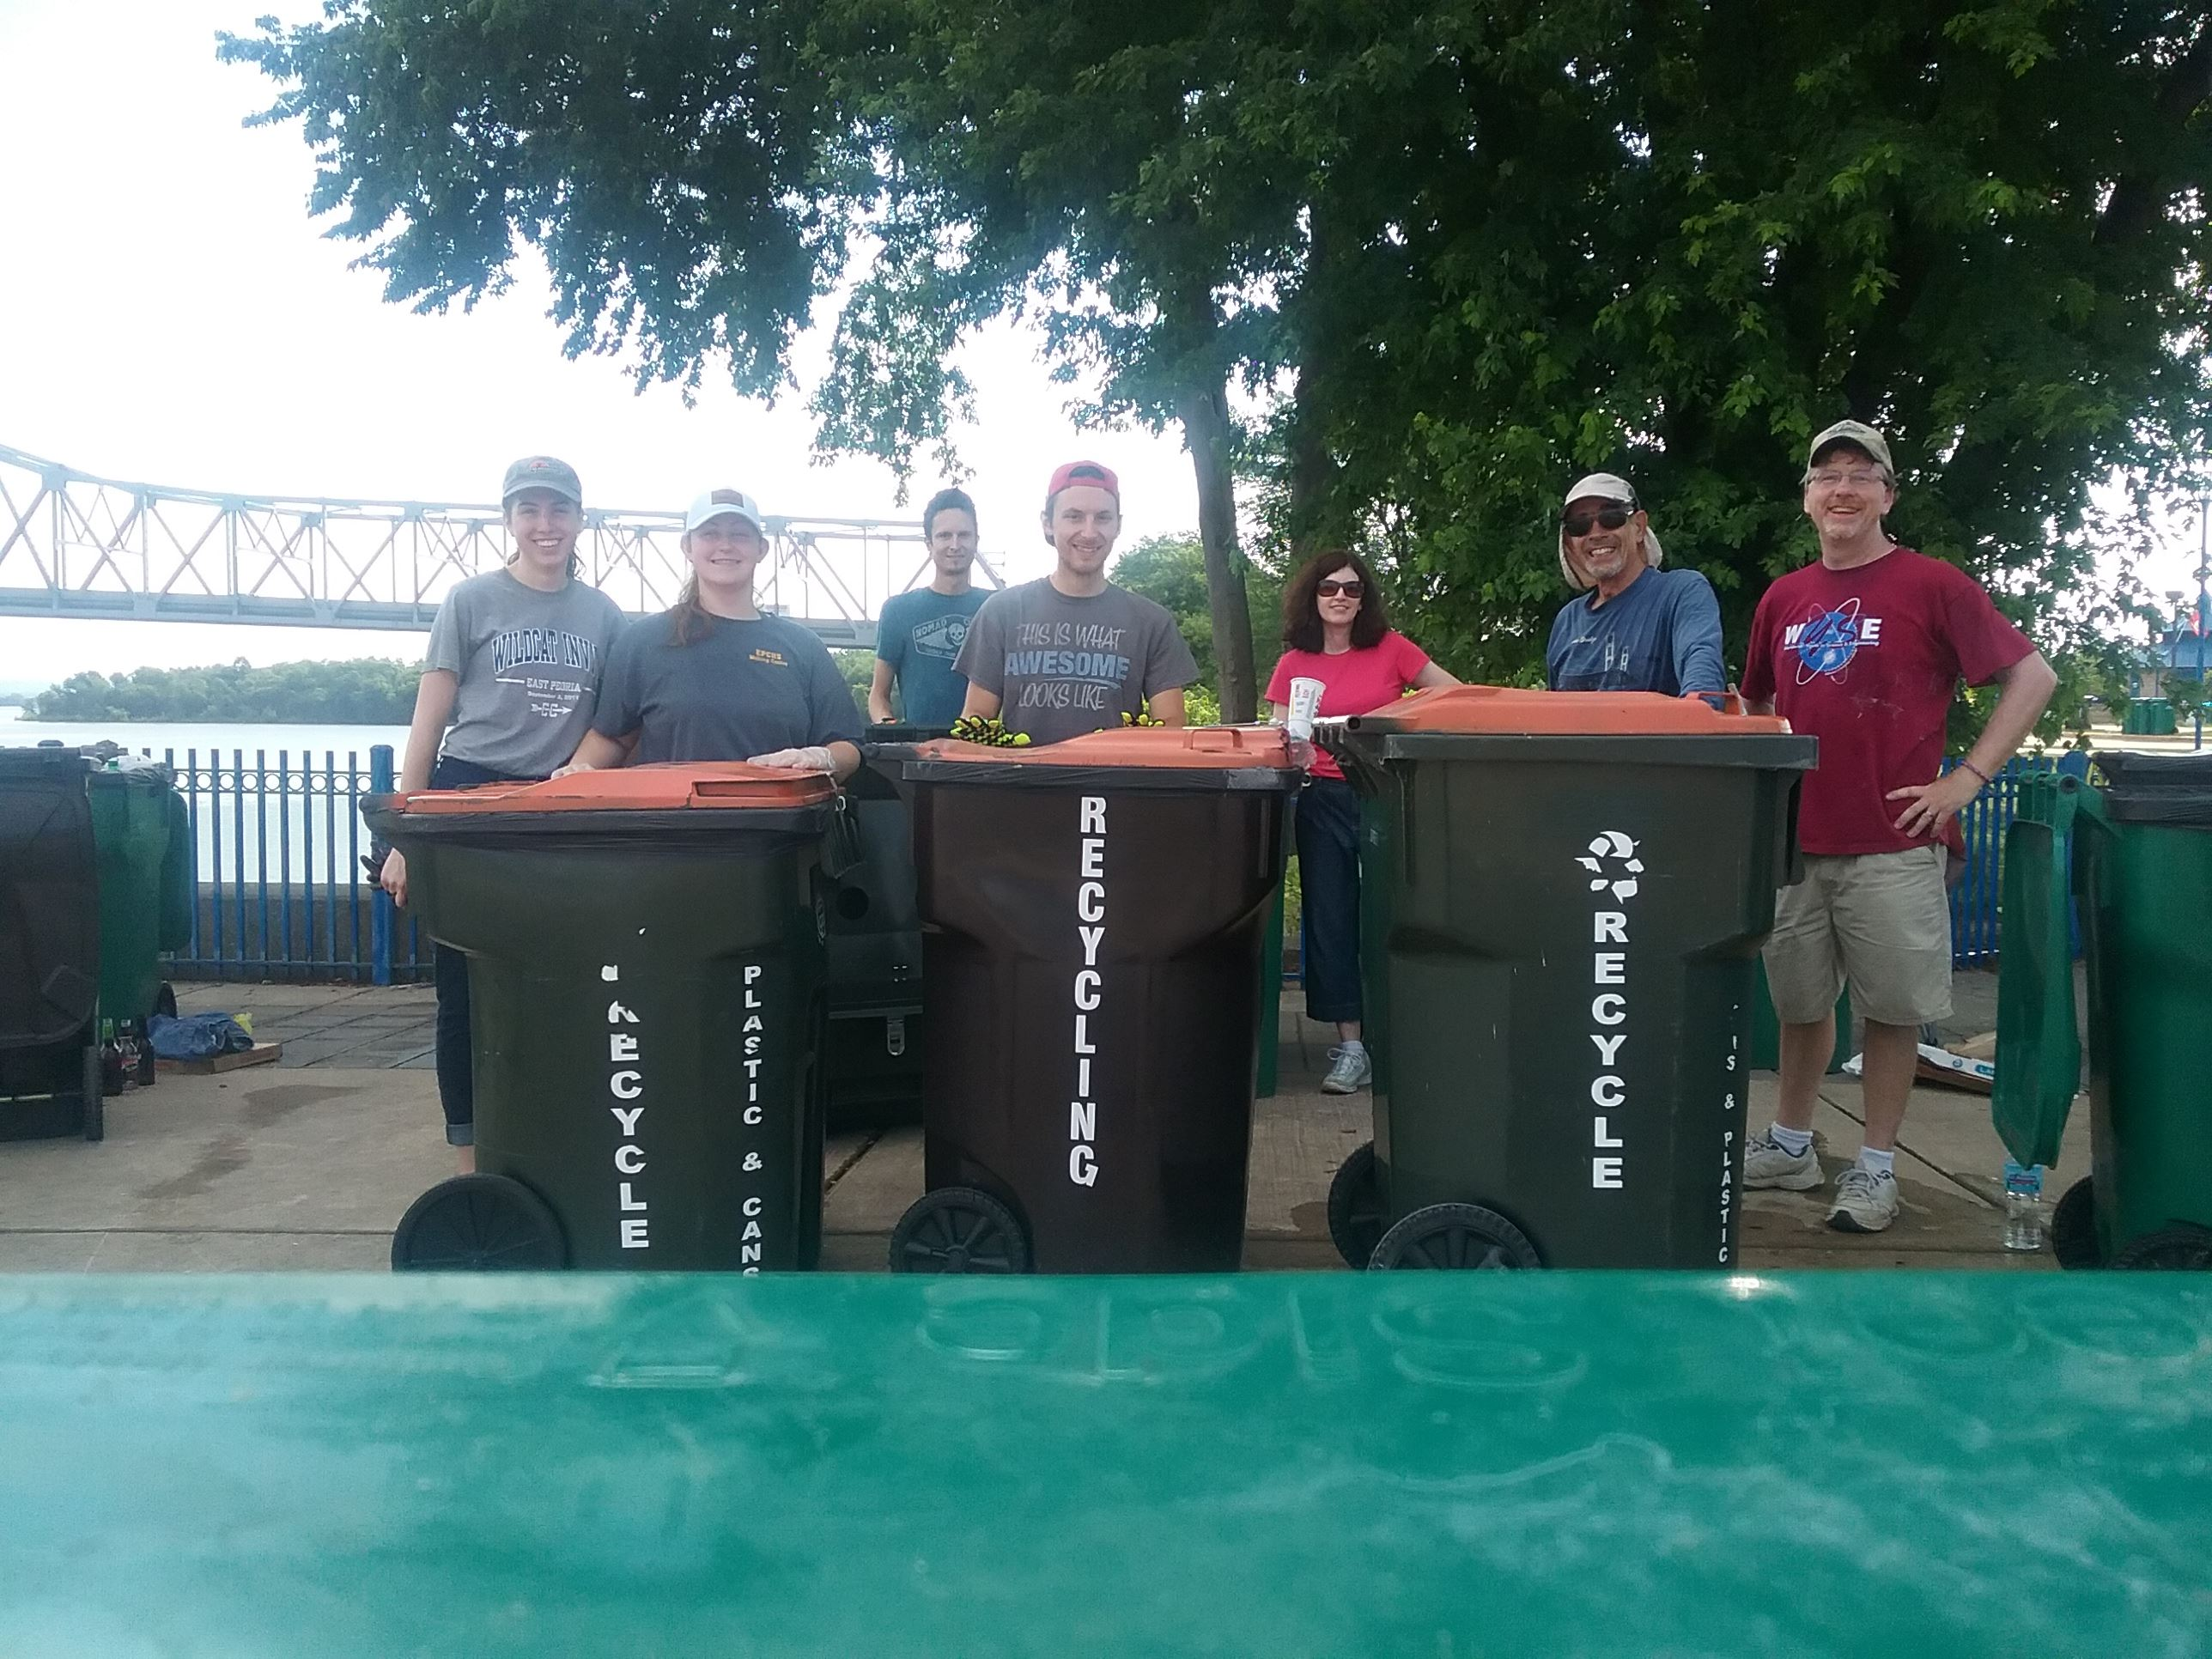 Members of the EP Green Team standing behind recycling bins